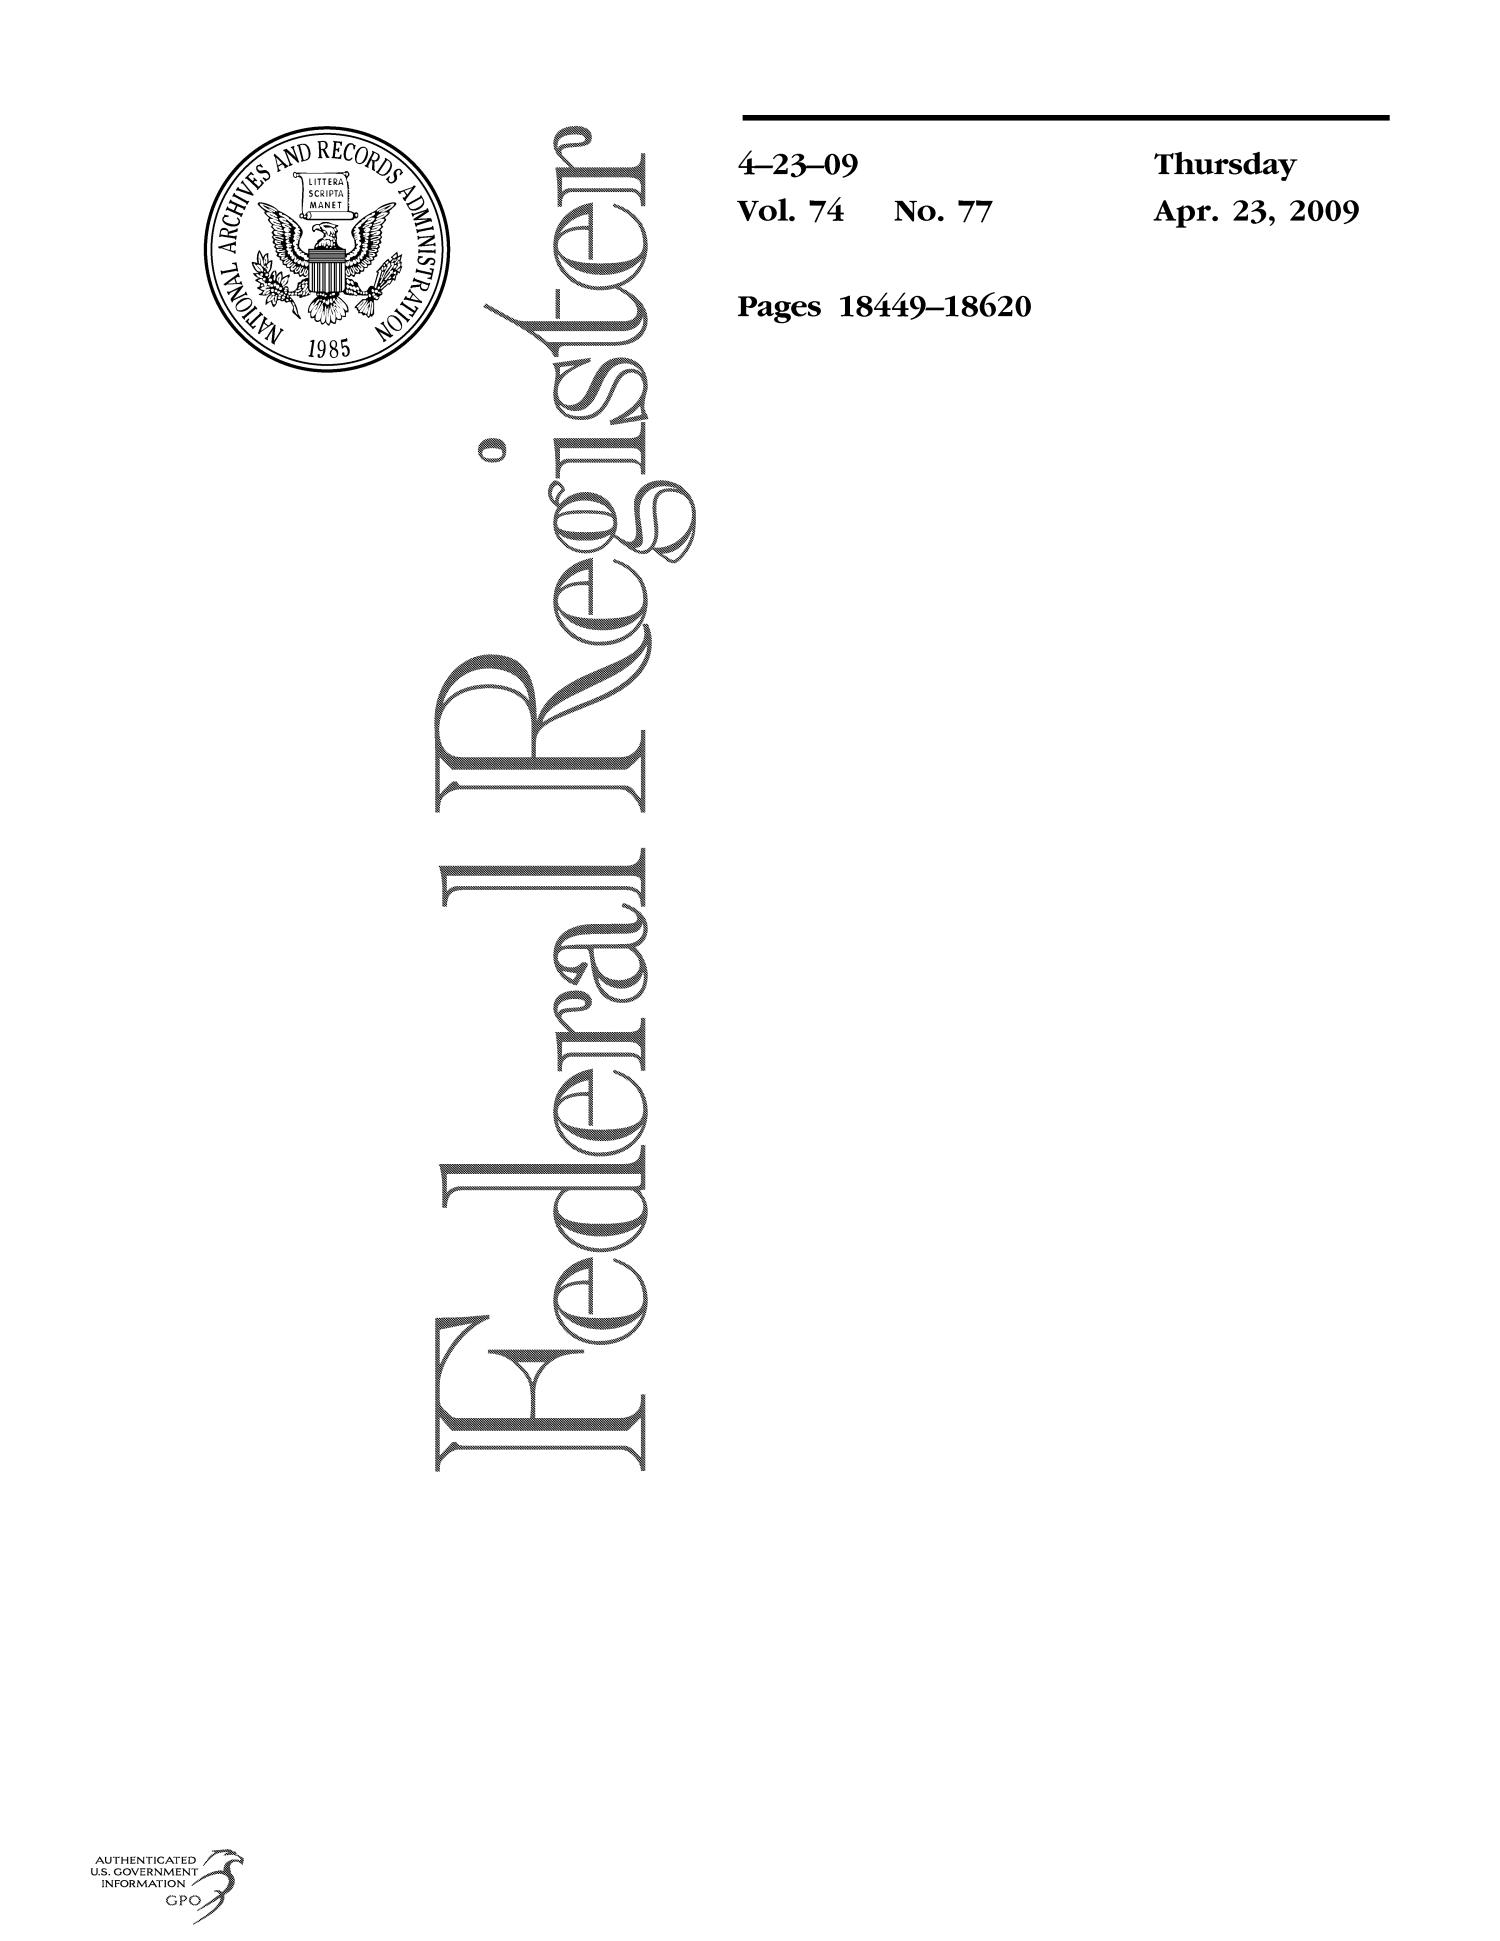 Federal Register, Volume 74, Number 77, April 23, 2009, Pages 18449-18620                                                                                                      Title Page